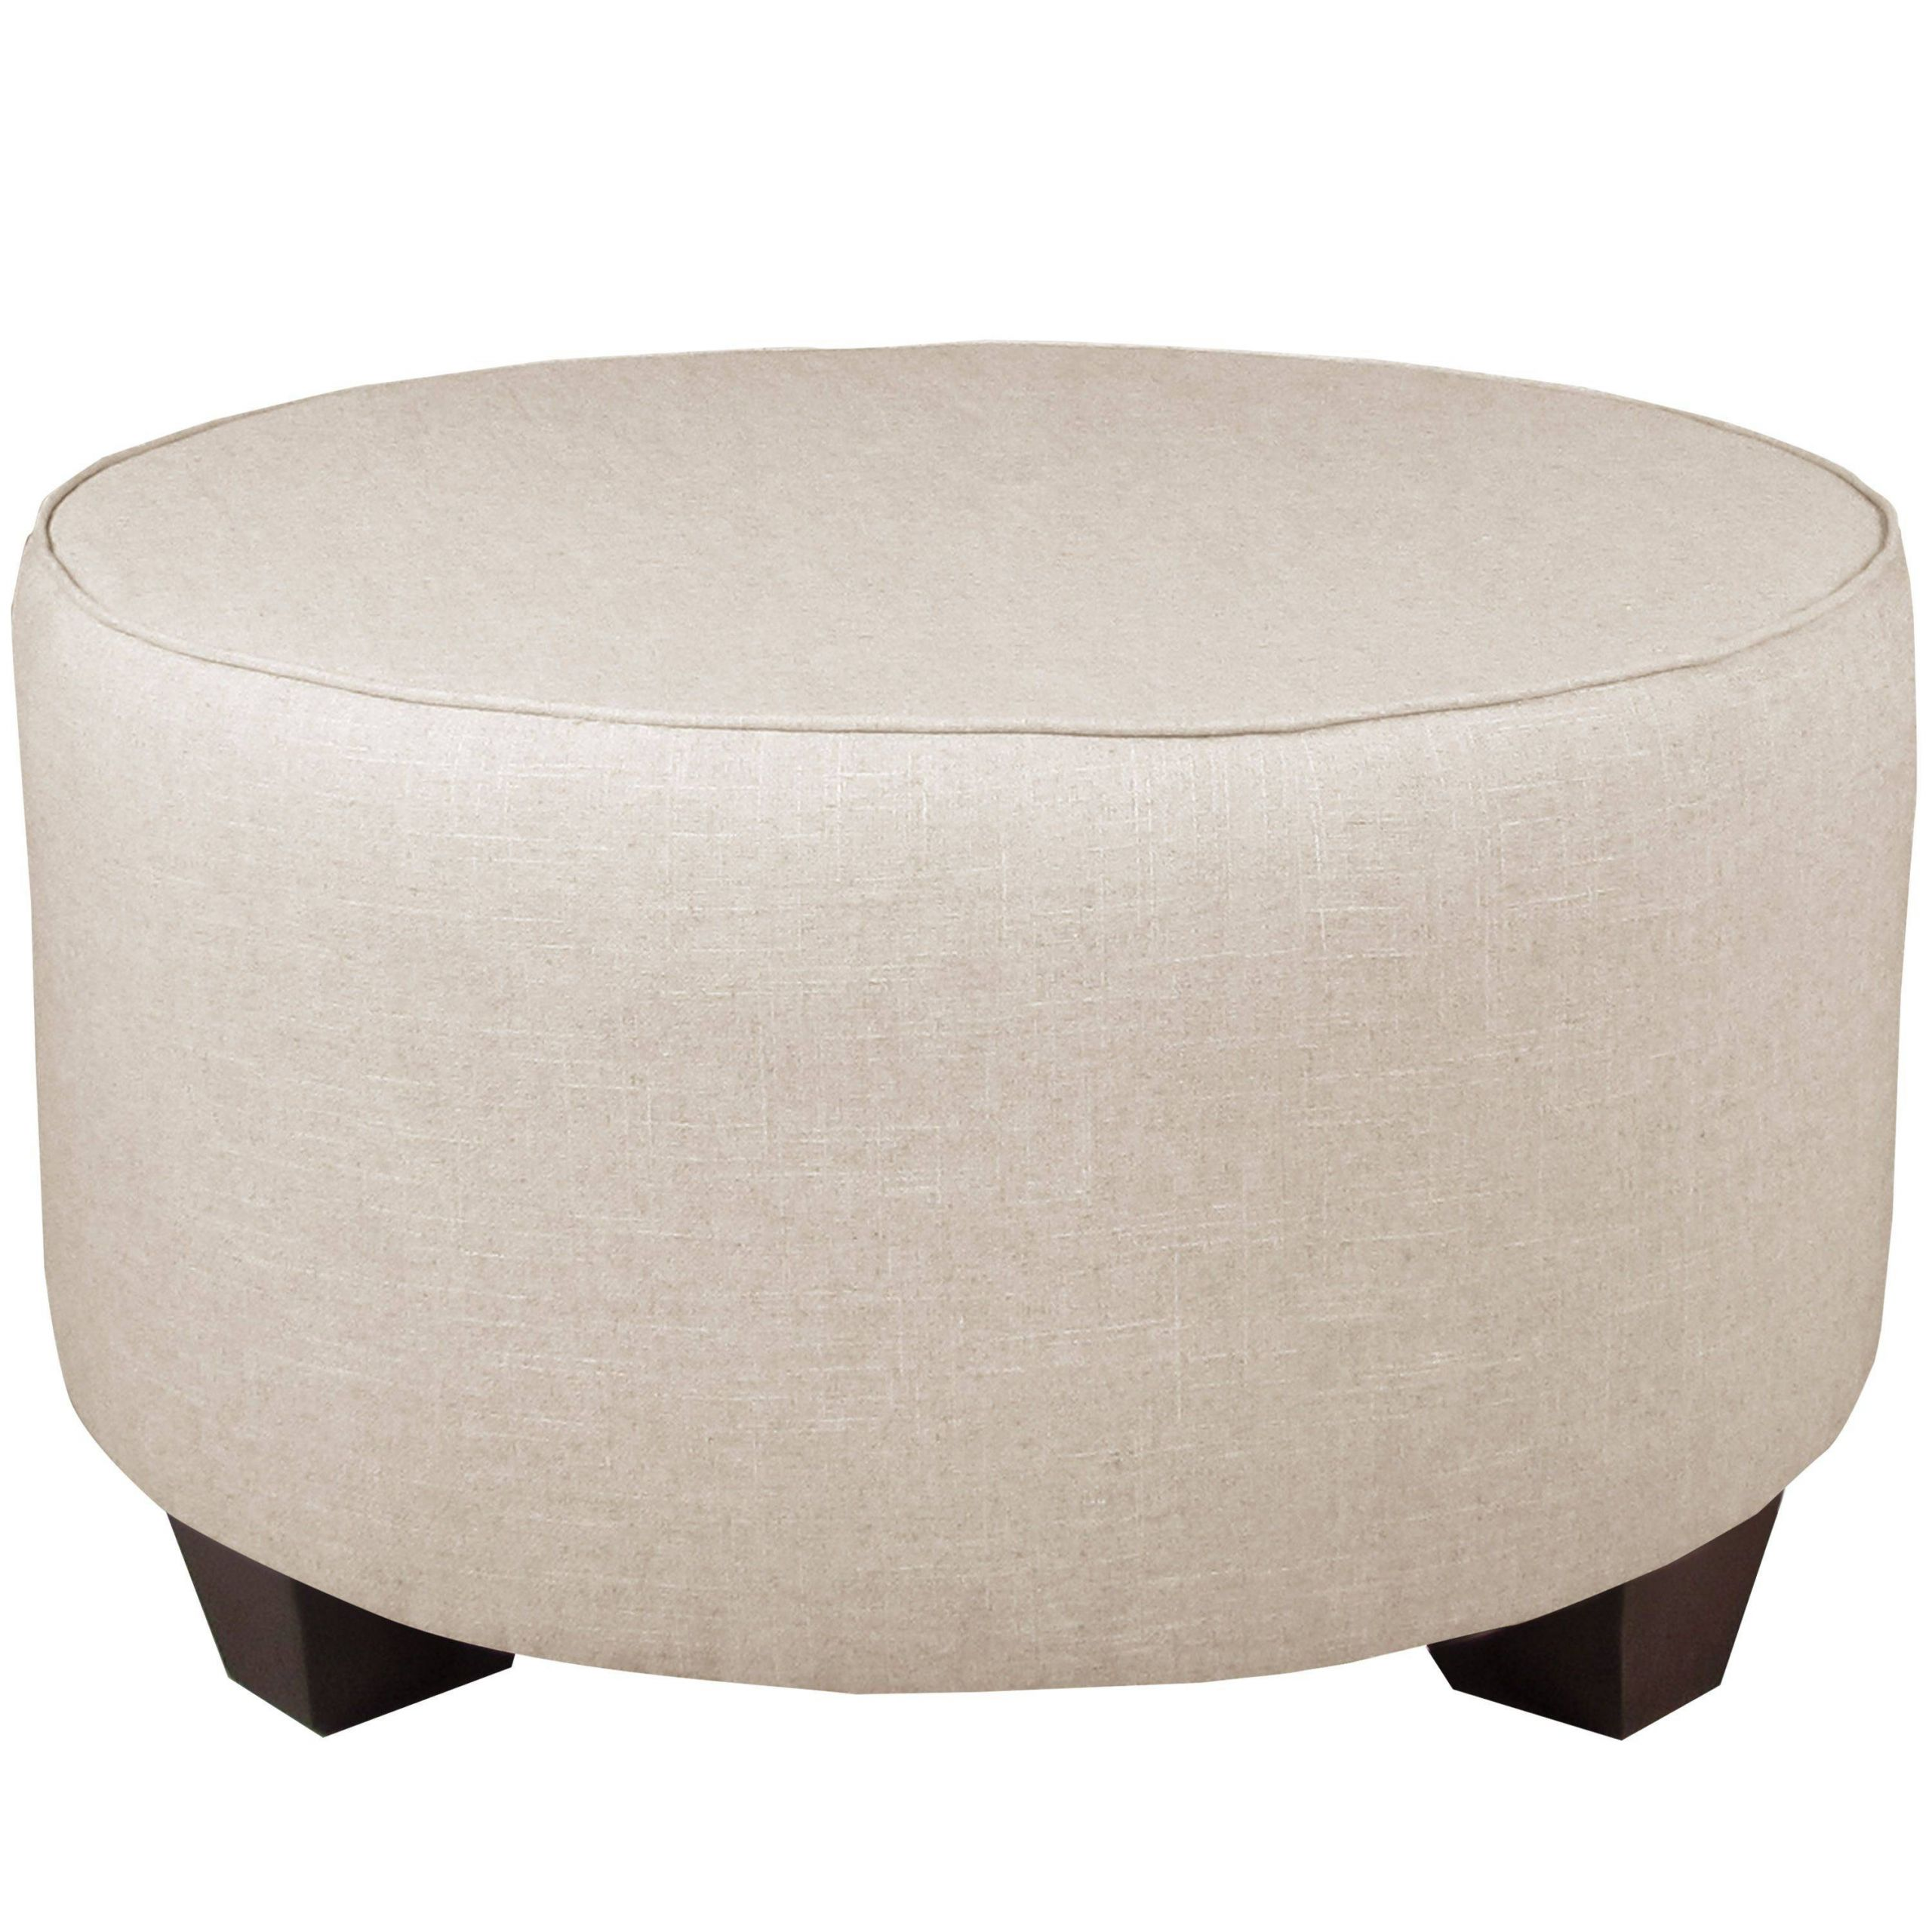 What Is An Ottoman Home Diy